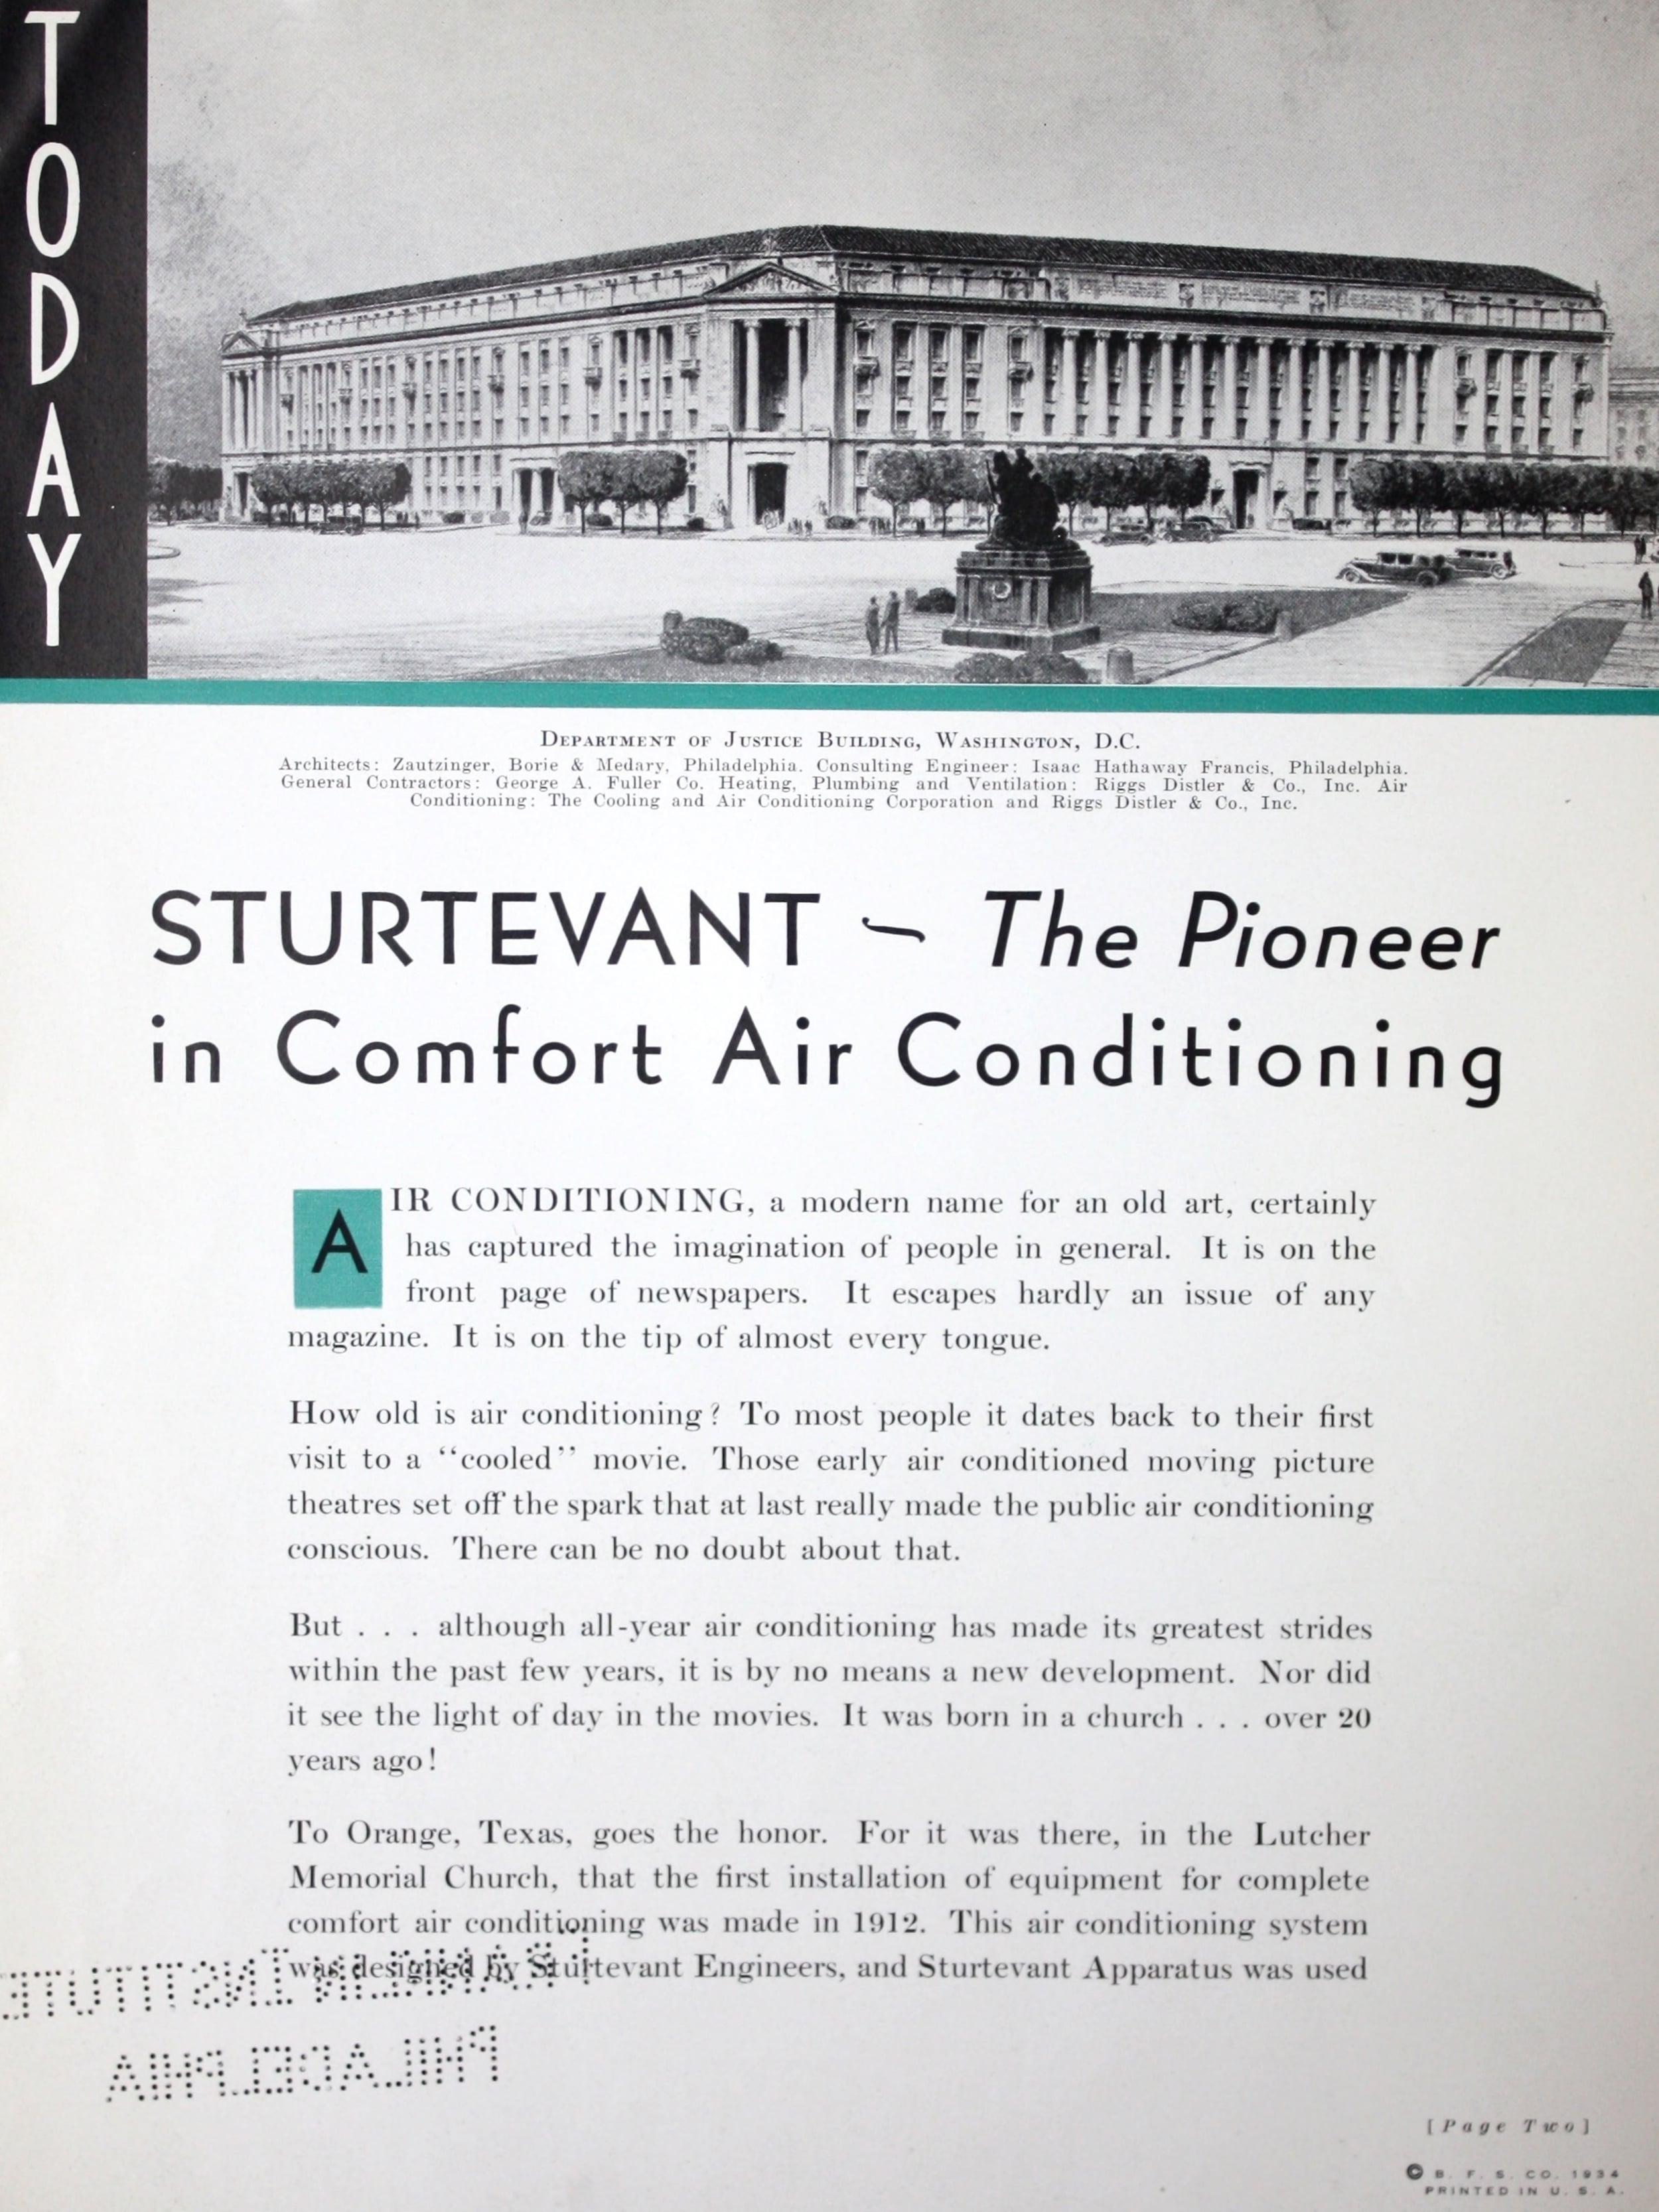 SturtevantAirConditioningCca42997_0001.jpg